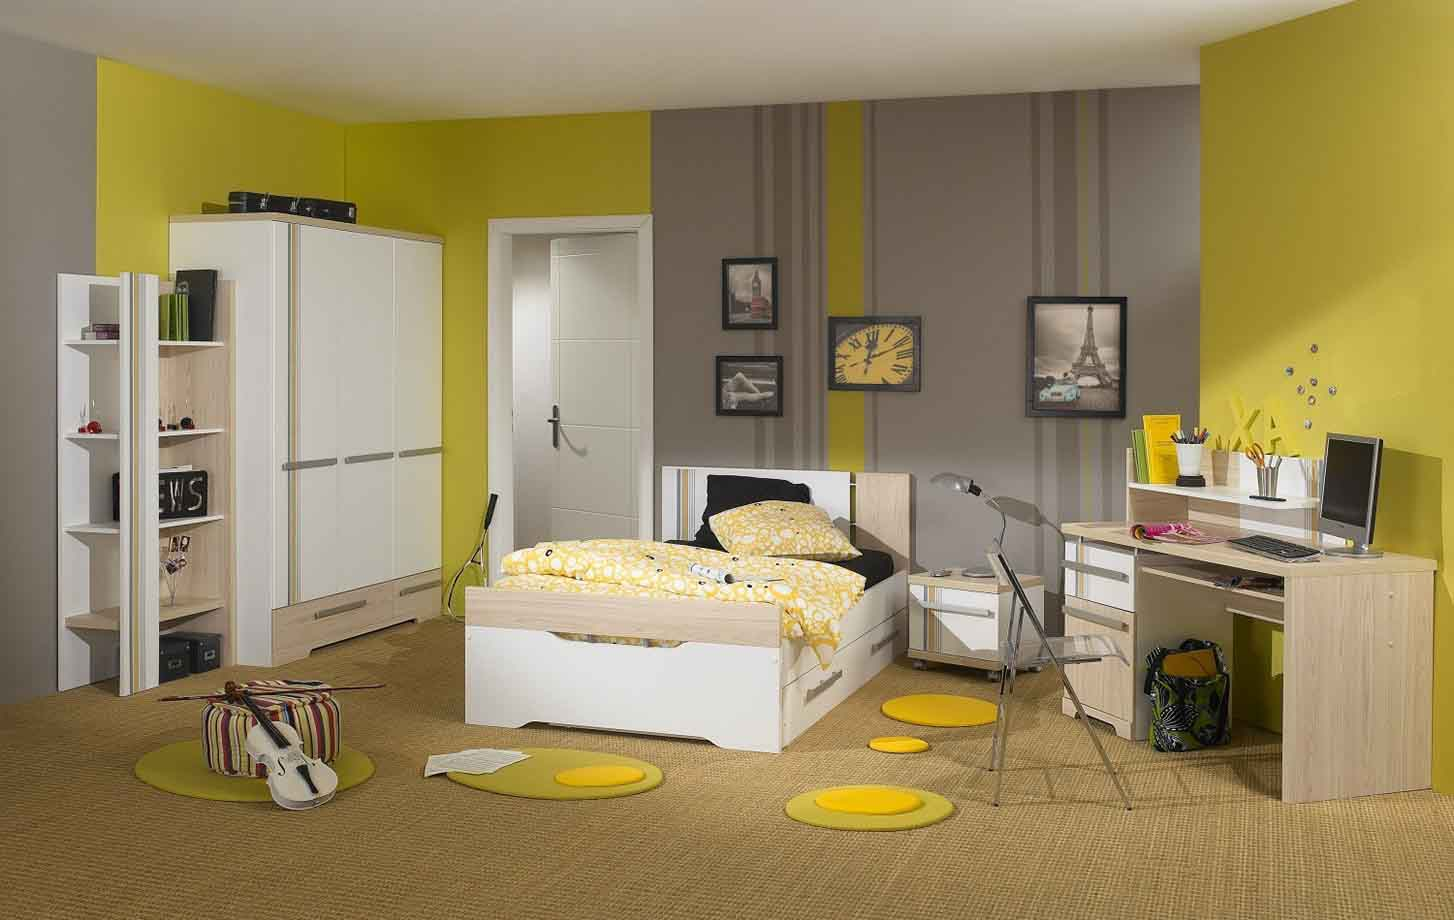 creative-grey-yellow-bedroom-idea